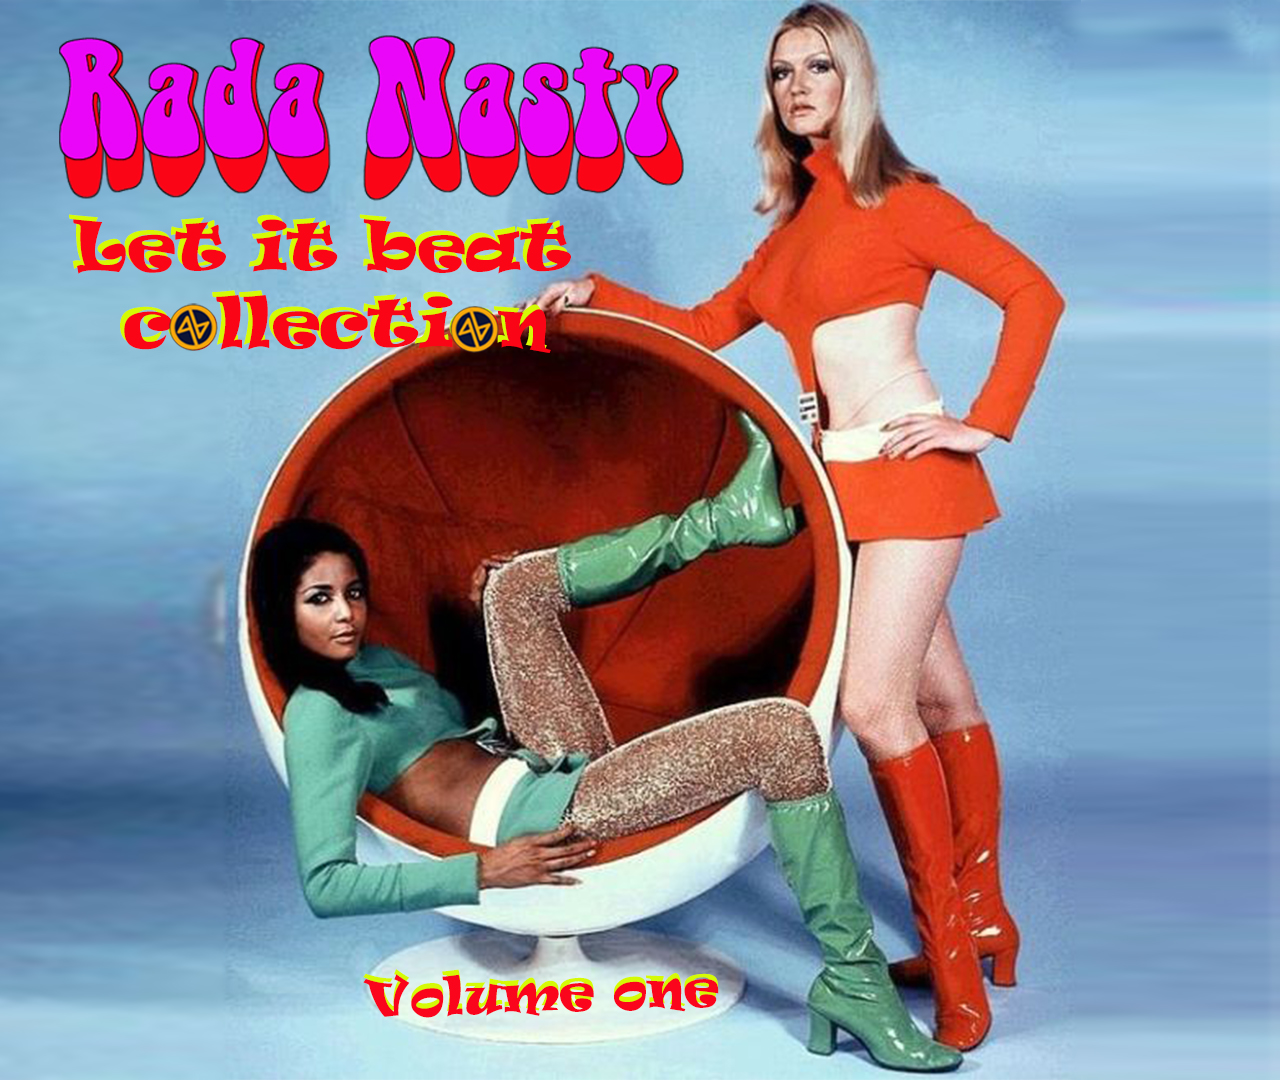 Let-it-beat-collection-9